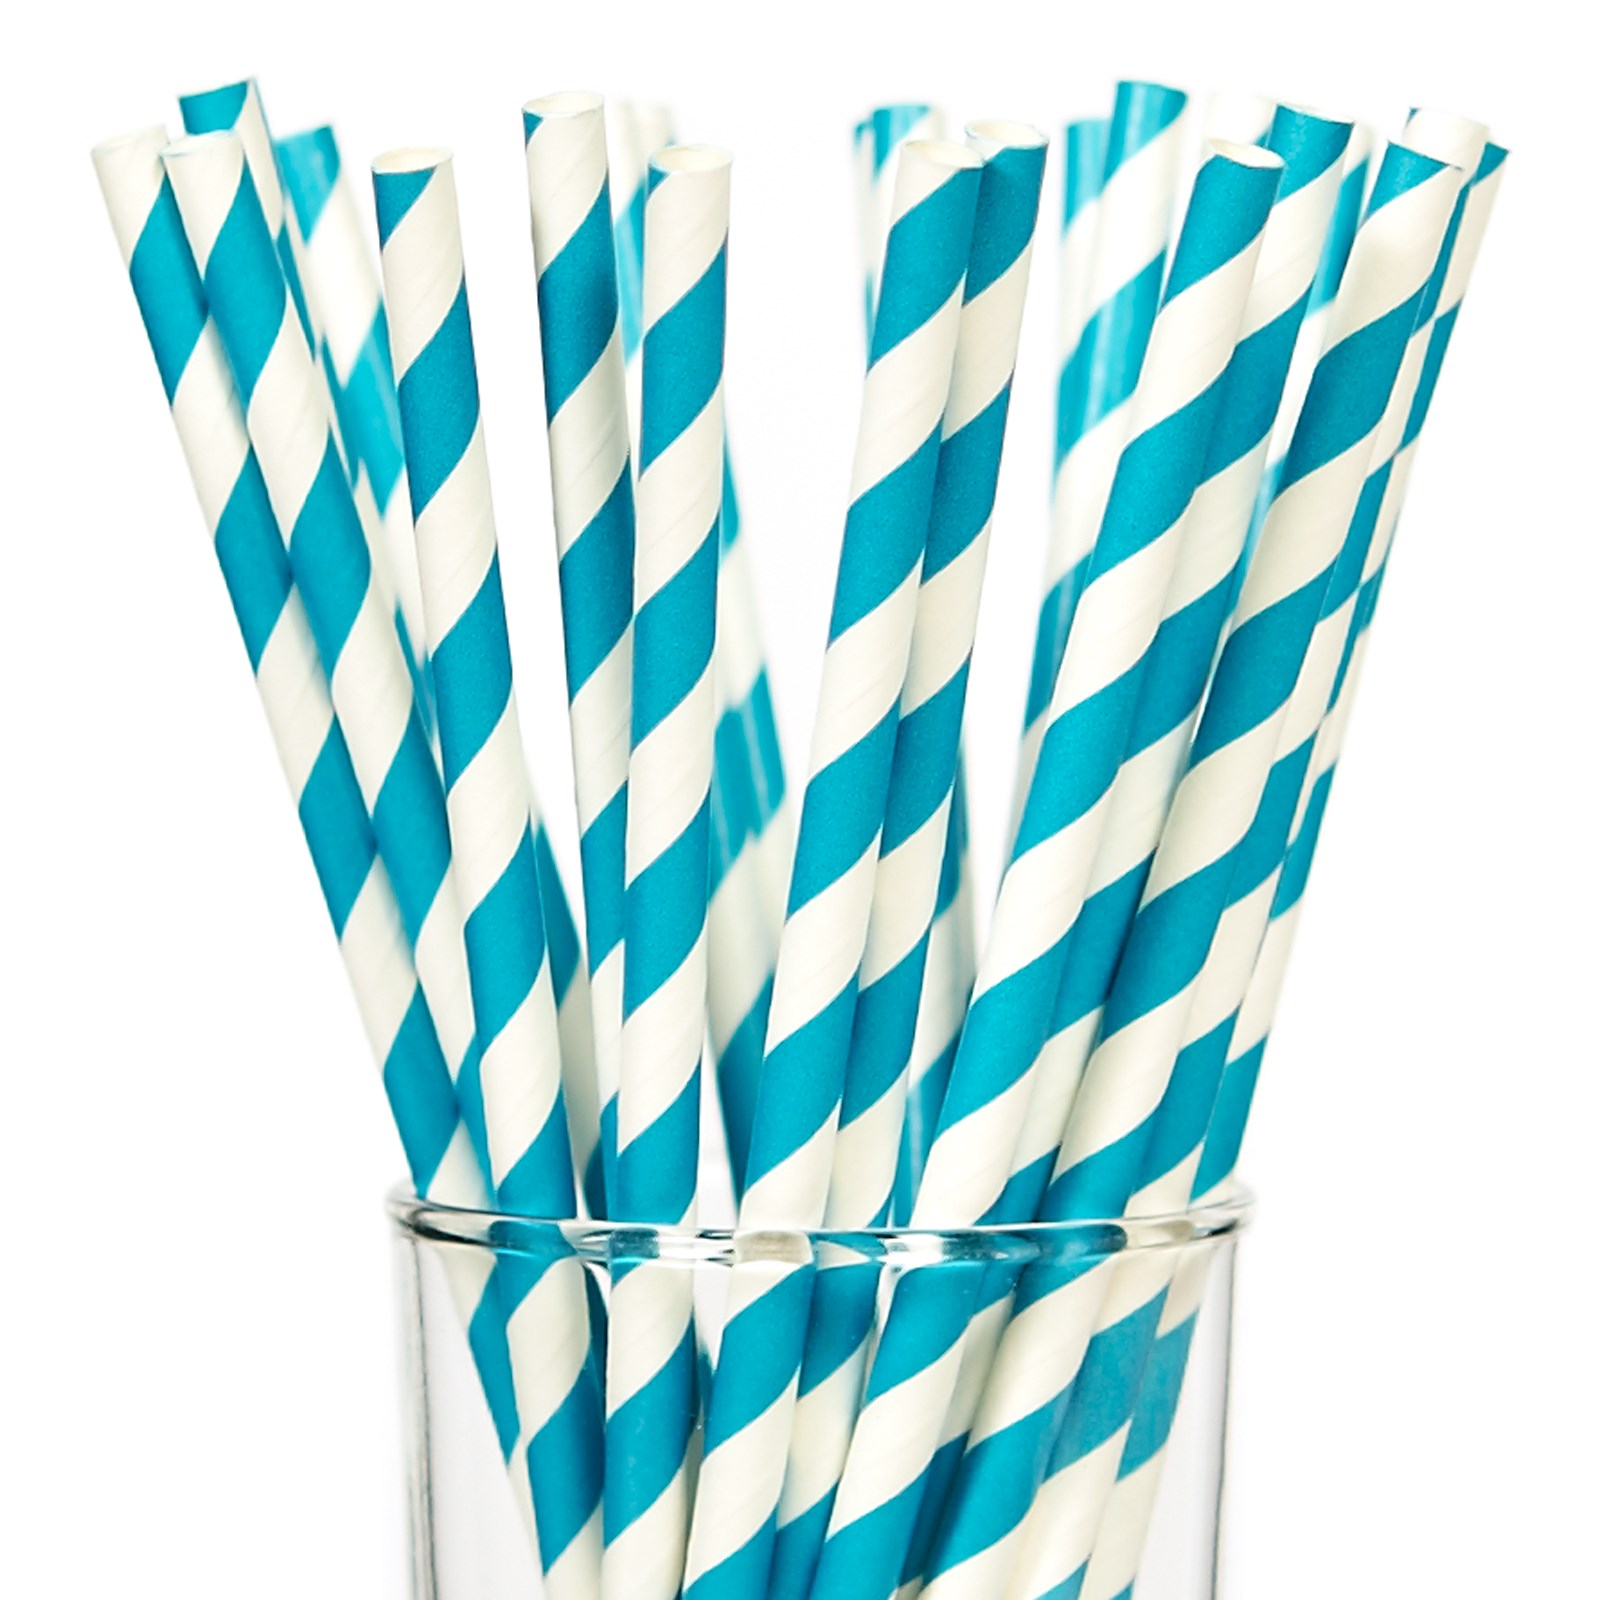 Disney Frozen party supplies aqua straws